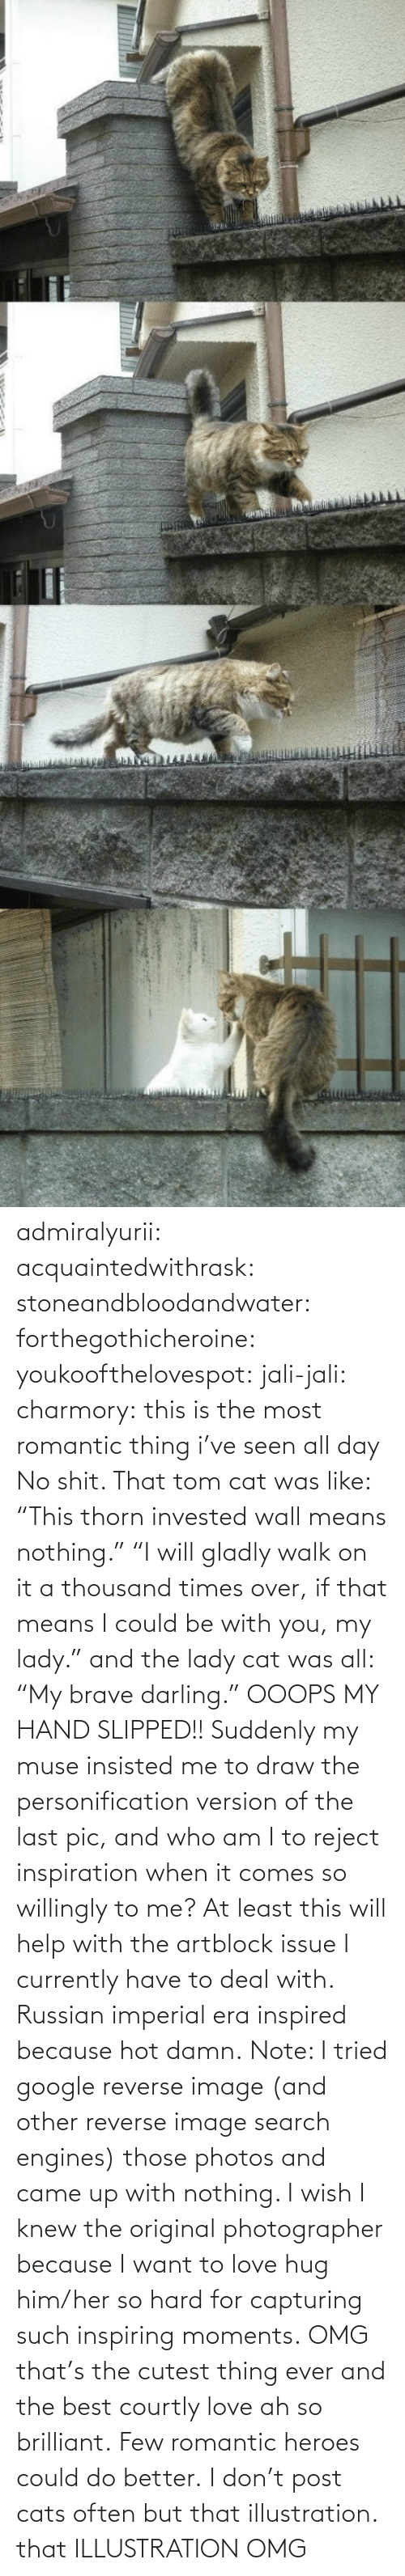 """Cats, Google, and Love: admiralyurii: acquaintedwithrask:  stoneandbloodandwater:  forthegothicheroine:  youkoofthelovespot:  jali-jali:  charmory:  this is the most romantic thing i've seen all day  No shit. That tom cat was like: """"This thorn invested wall means nothing."""" """"I will gladly walk on it a thousand times over, if that means I could be with you, my lady."""" and the lady cat was all: """"My brave darling."""" OOOPS MY HAND SLIPPED!!  Suddenly my muse insisted me to draw the personification version of the last pic, and who am I to reject inspiration when it comes so willingly to me? At least this will help with the artblock issue I currently have to deal with. Russian imperial era inspired because hot damn. Note: I tried google reverse image (and other reverse image search engines) those photos and came up with nothing. I wish I knew the original photographer because I want to love hug him/her so hard for capturing such inspiring moments.  OMG that's the cutest thing ever and the best courtly love ah so brilliant.  Few romantic heroes could do better.  I don't post cats often butthat illustration.  that ILLUSTRATION    OMG"""